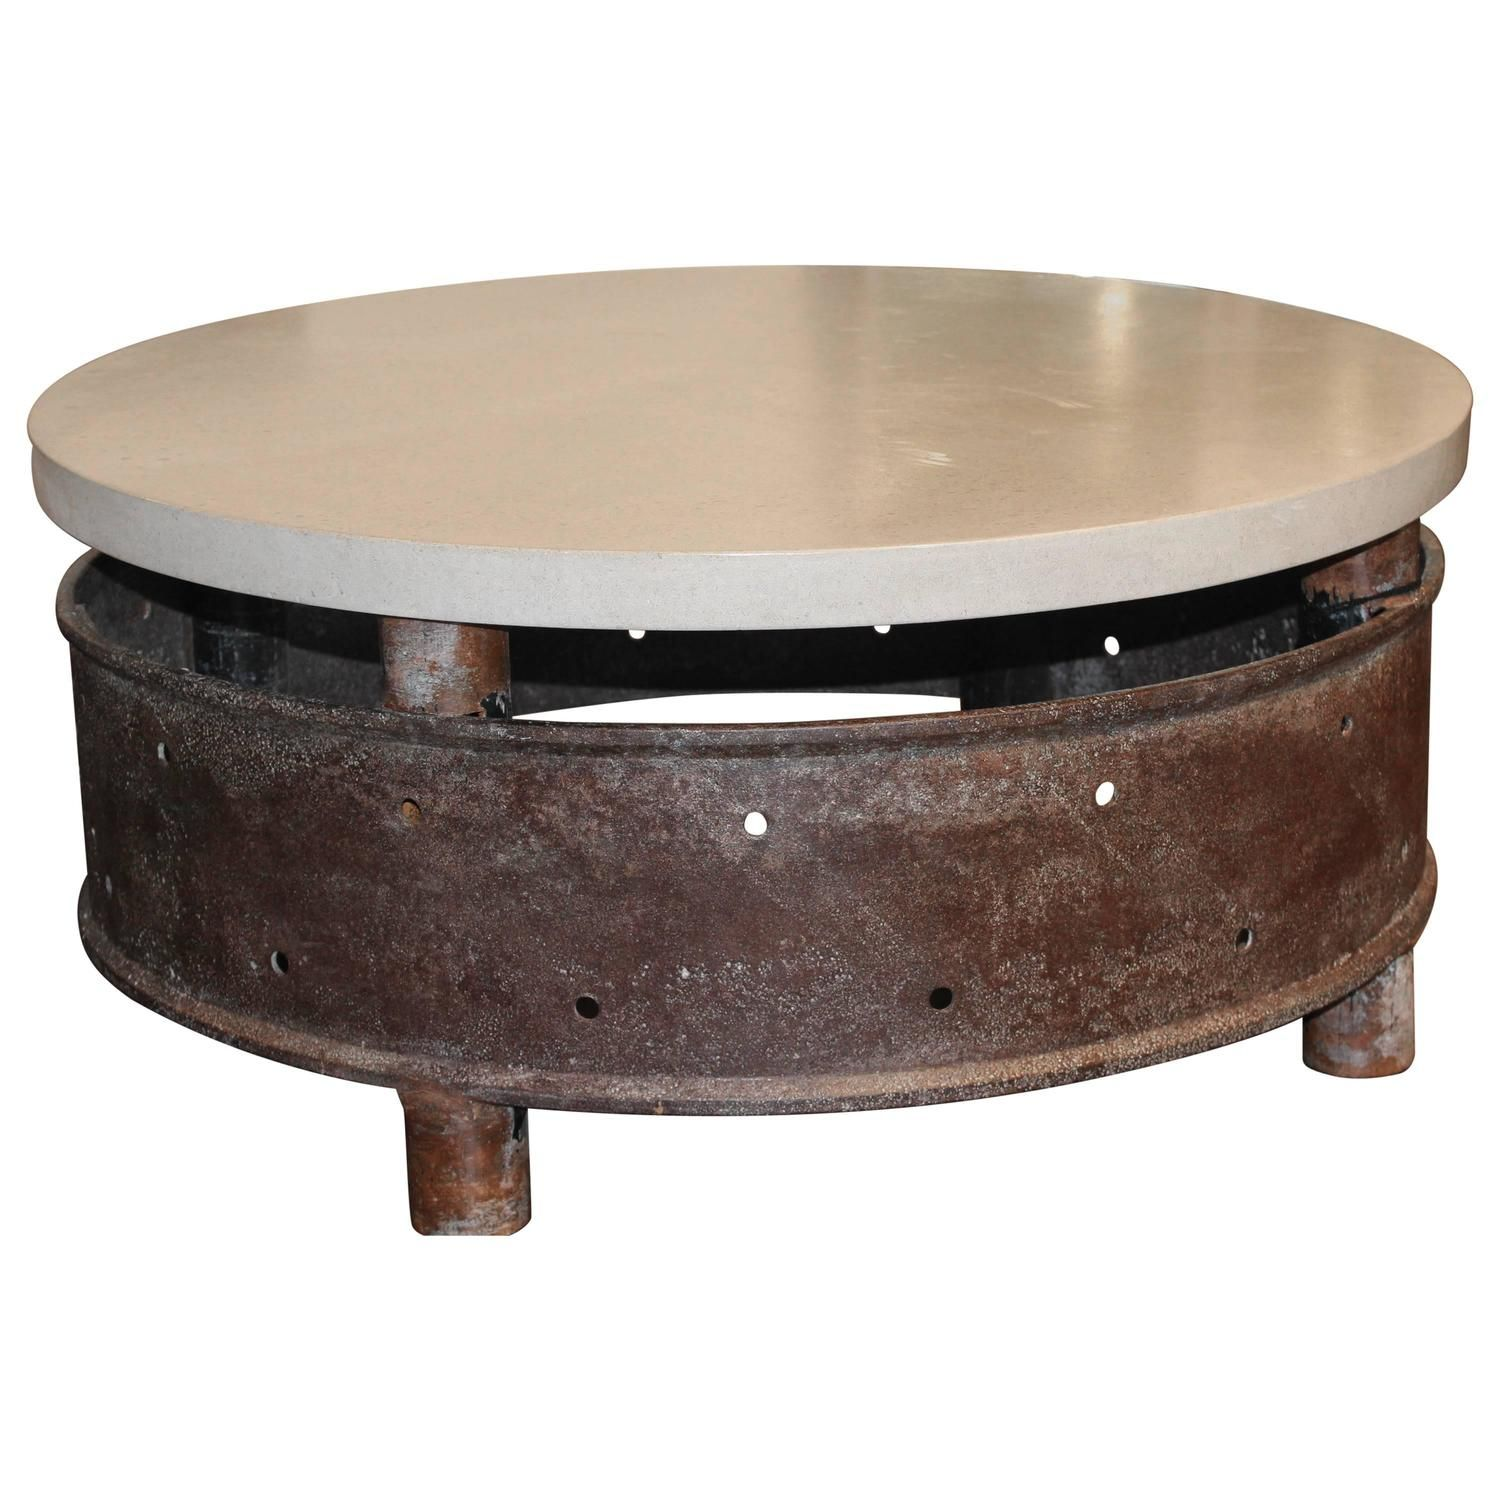 Reclaimed Industrial Wheel With Limestone Top As Coffee Table